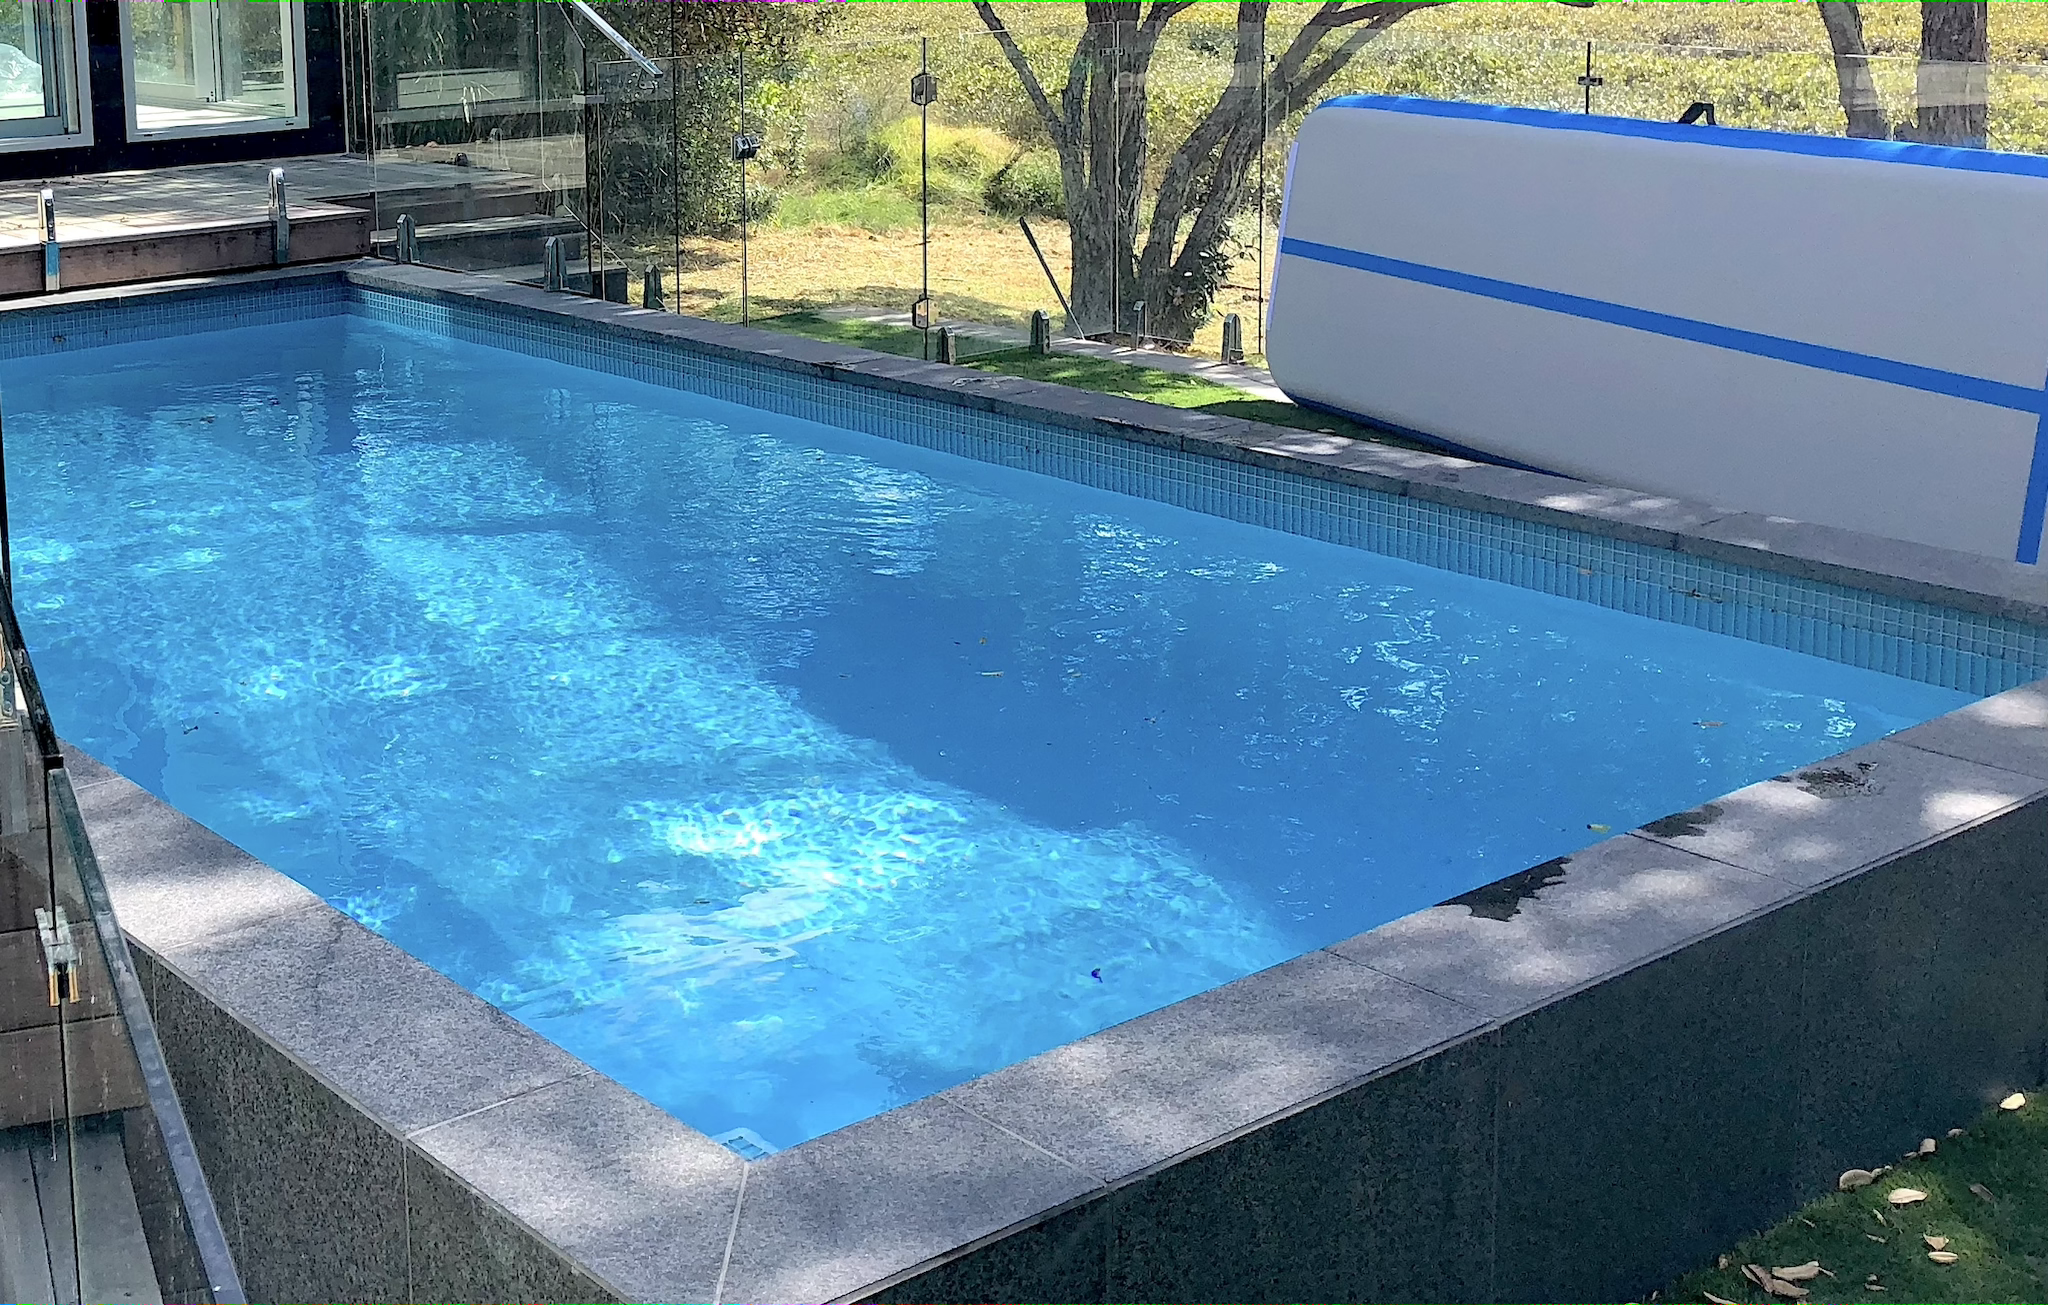 6x3m pool by Mobius Pools